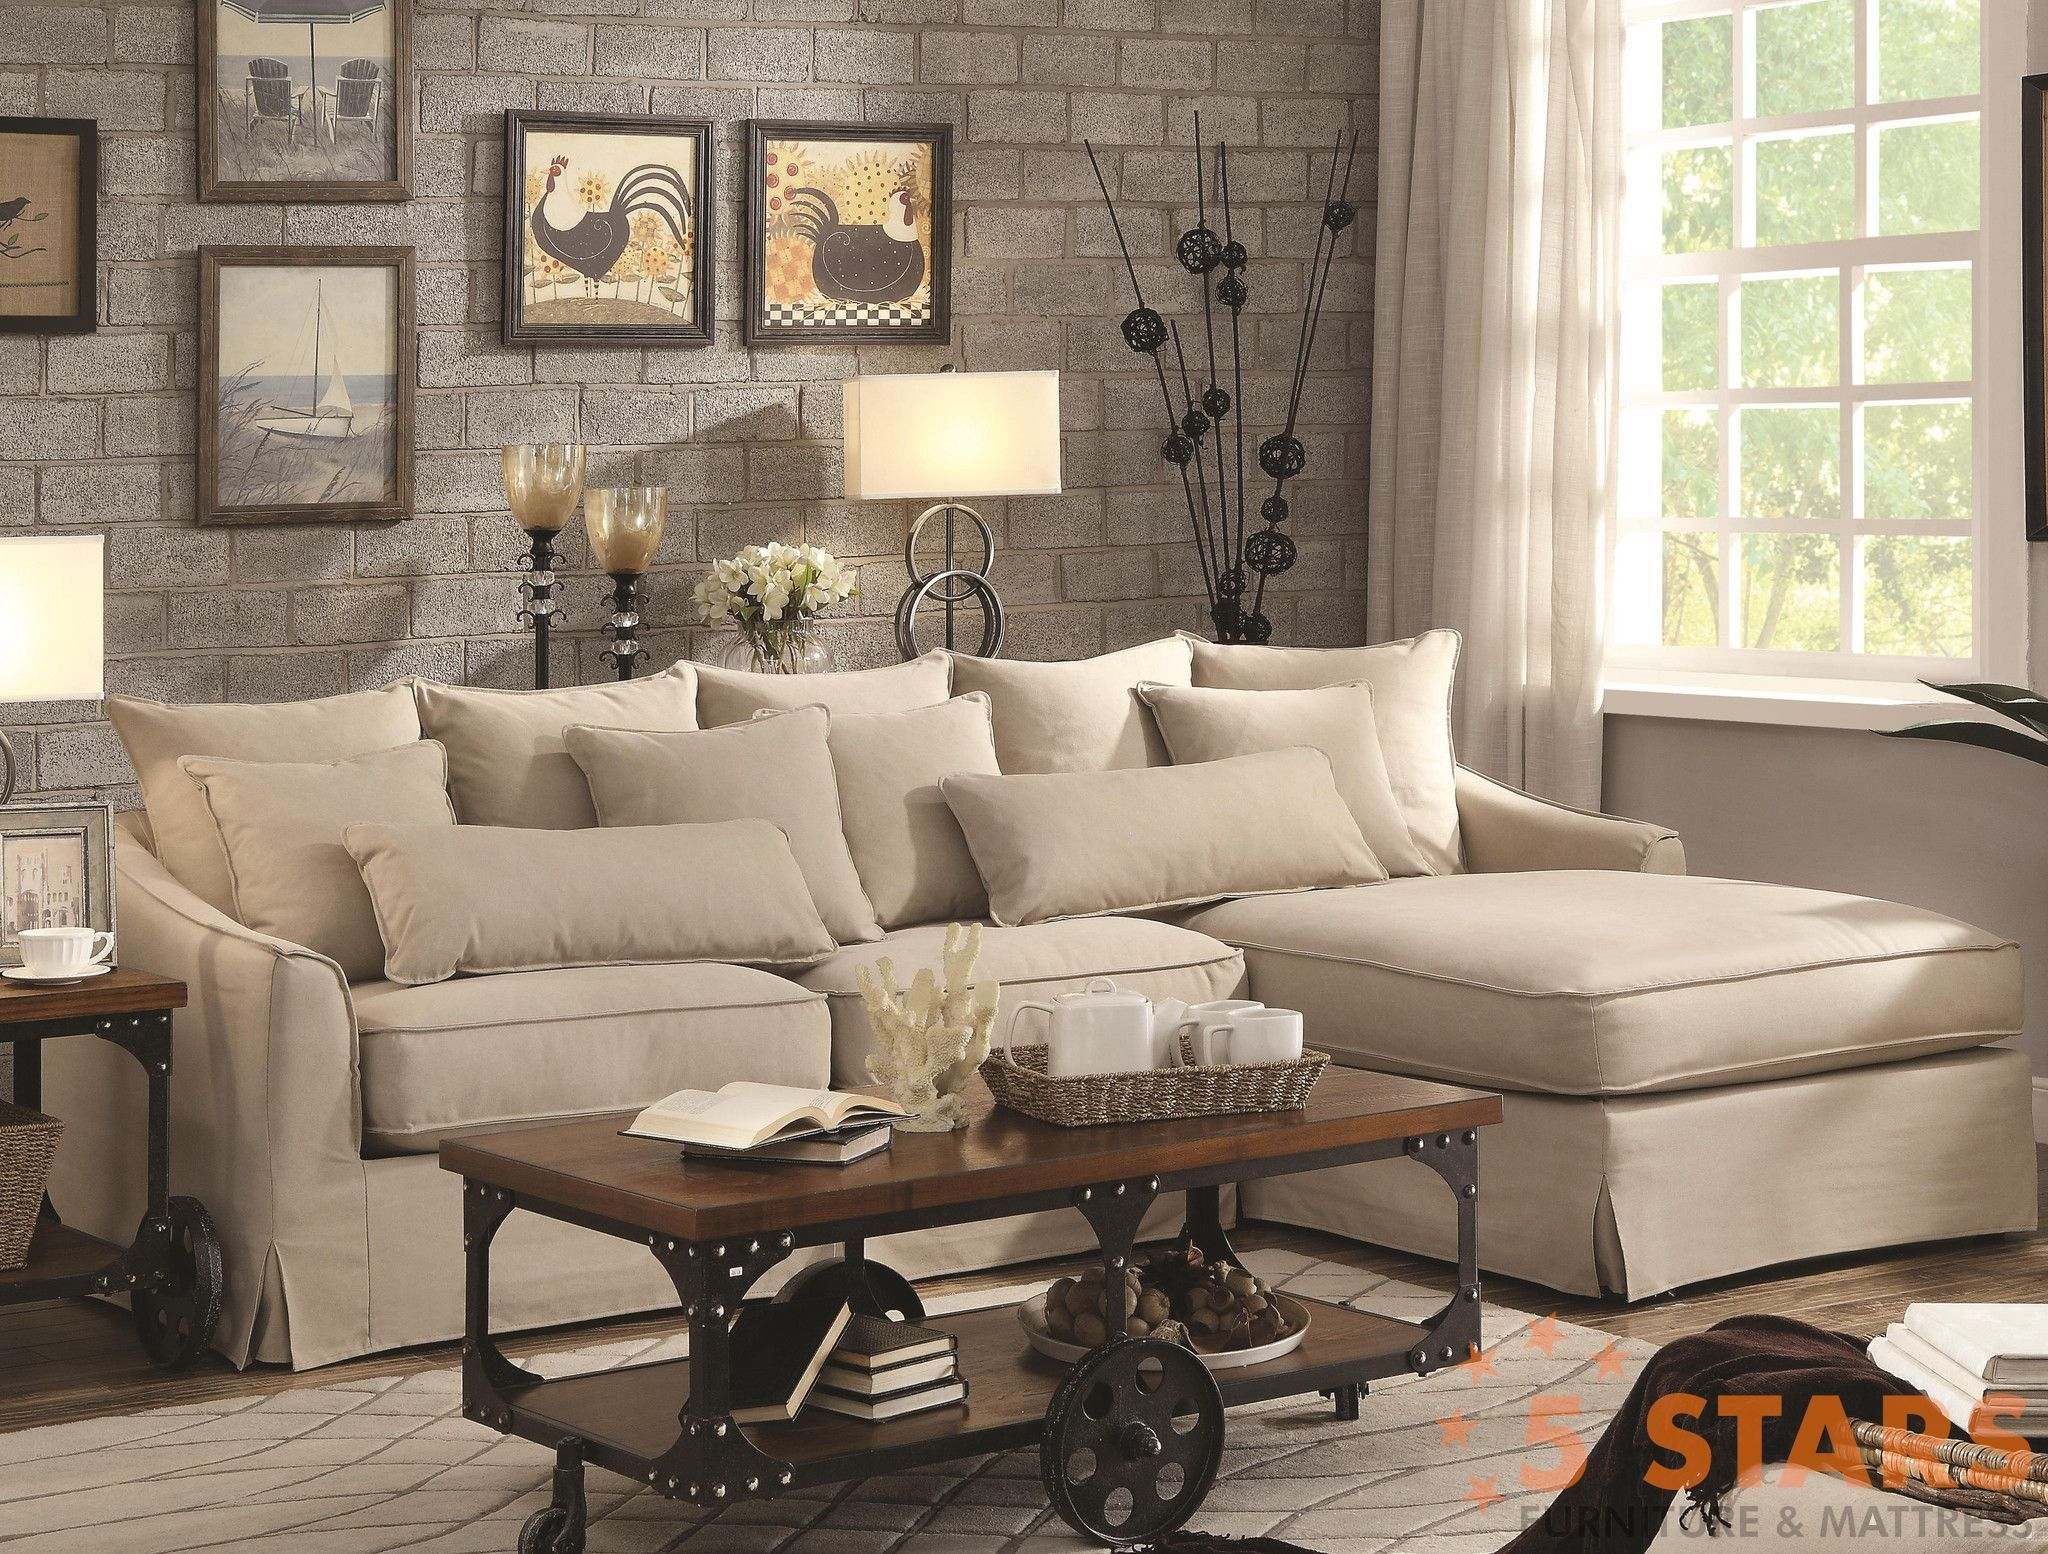 Knottley Slipcovered Sectional Sofa With Chaise And Feather Blend Cush 5 St